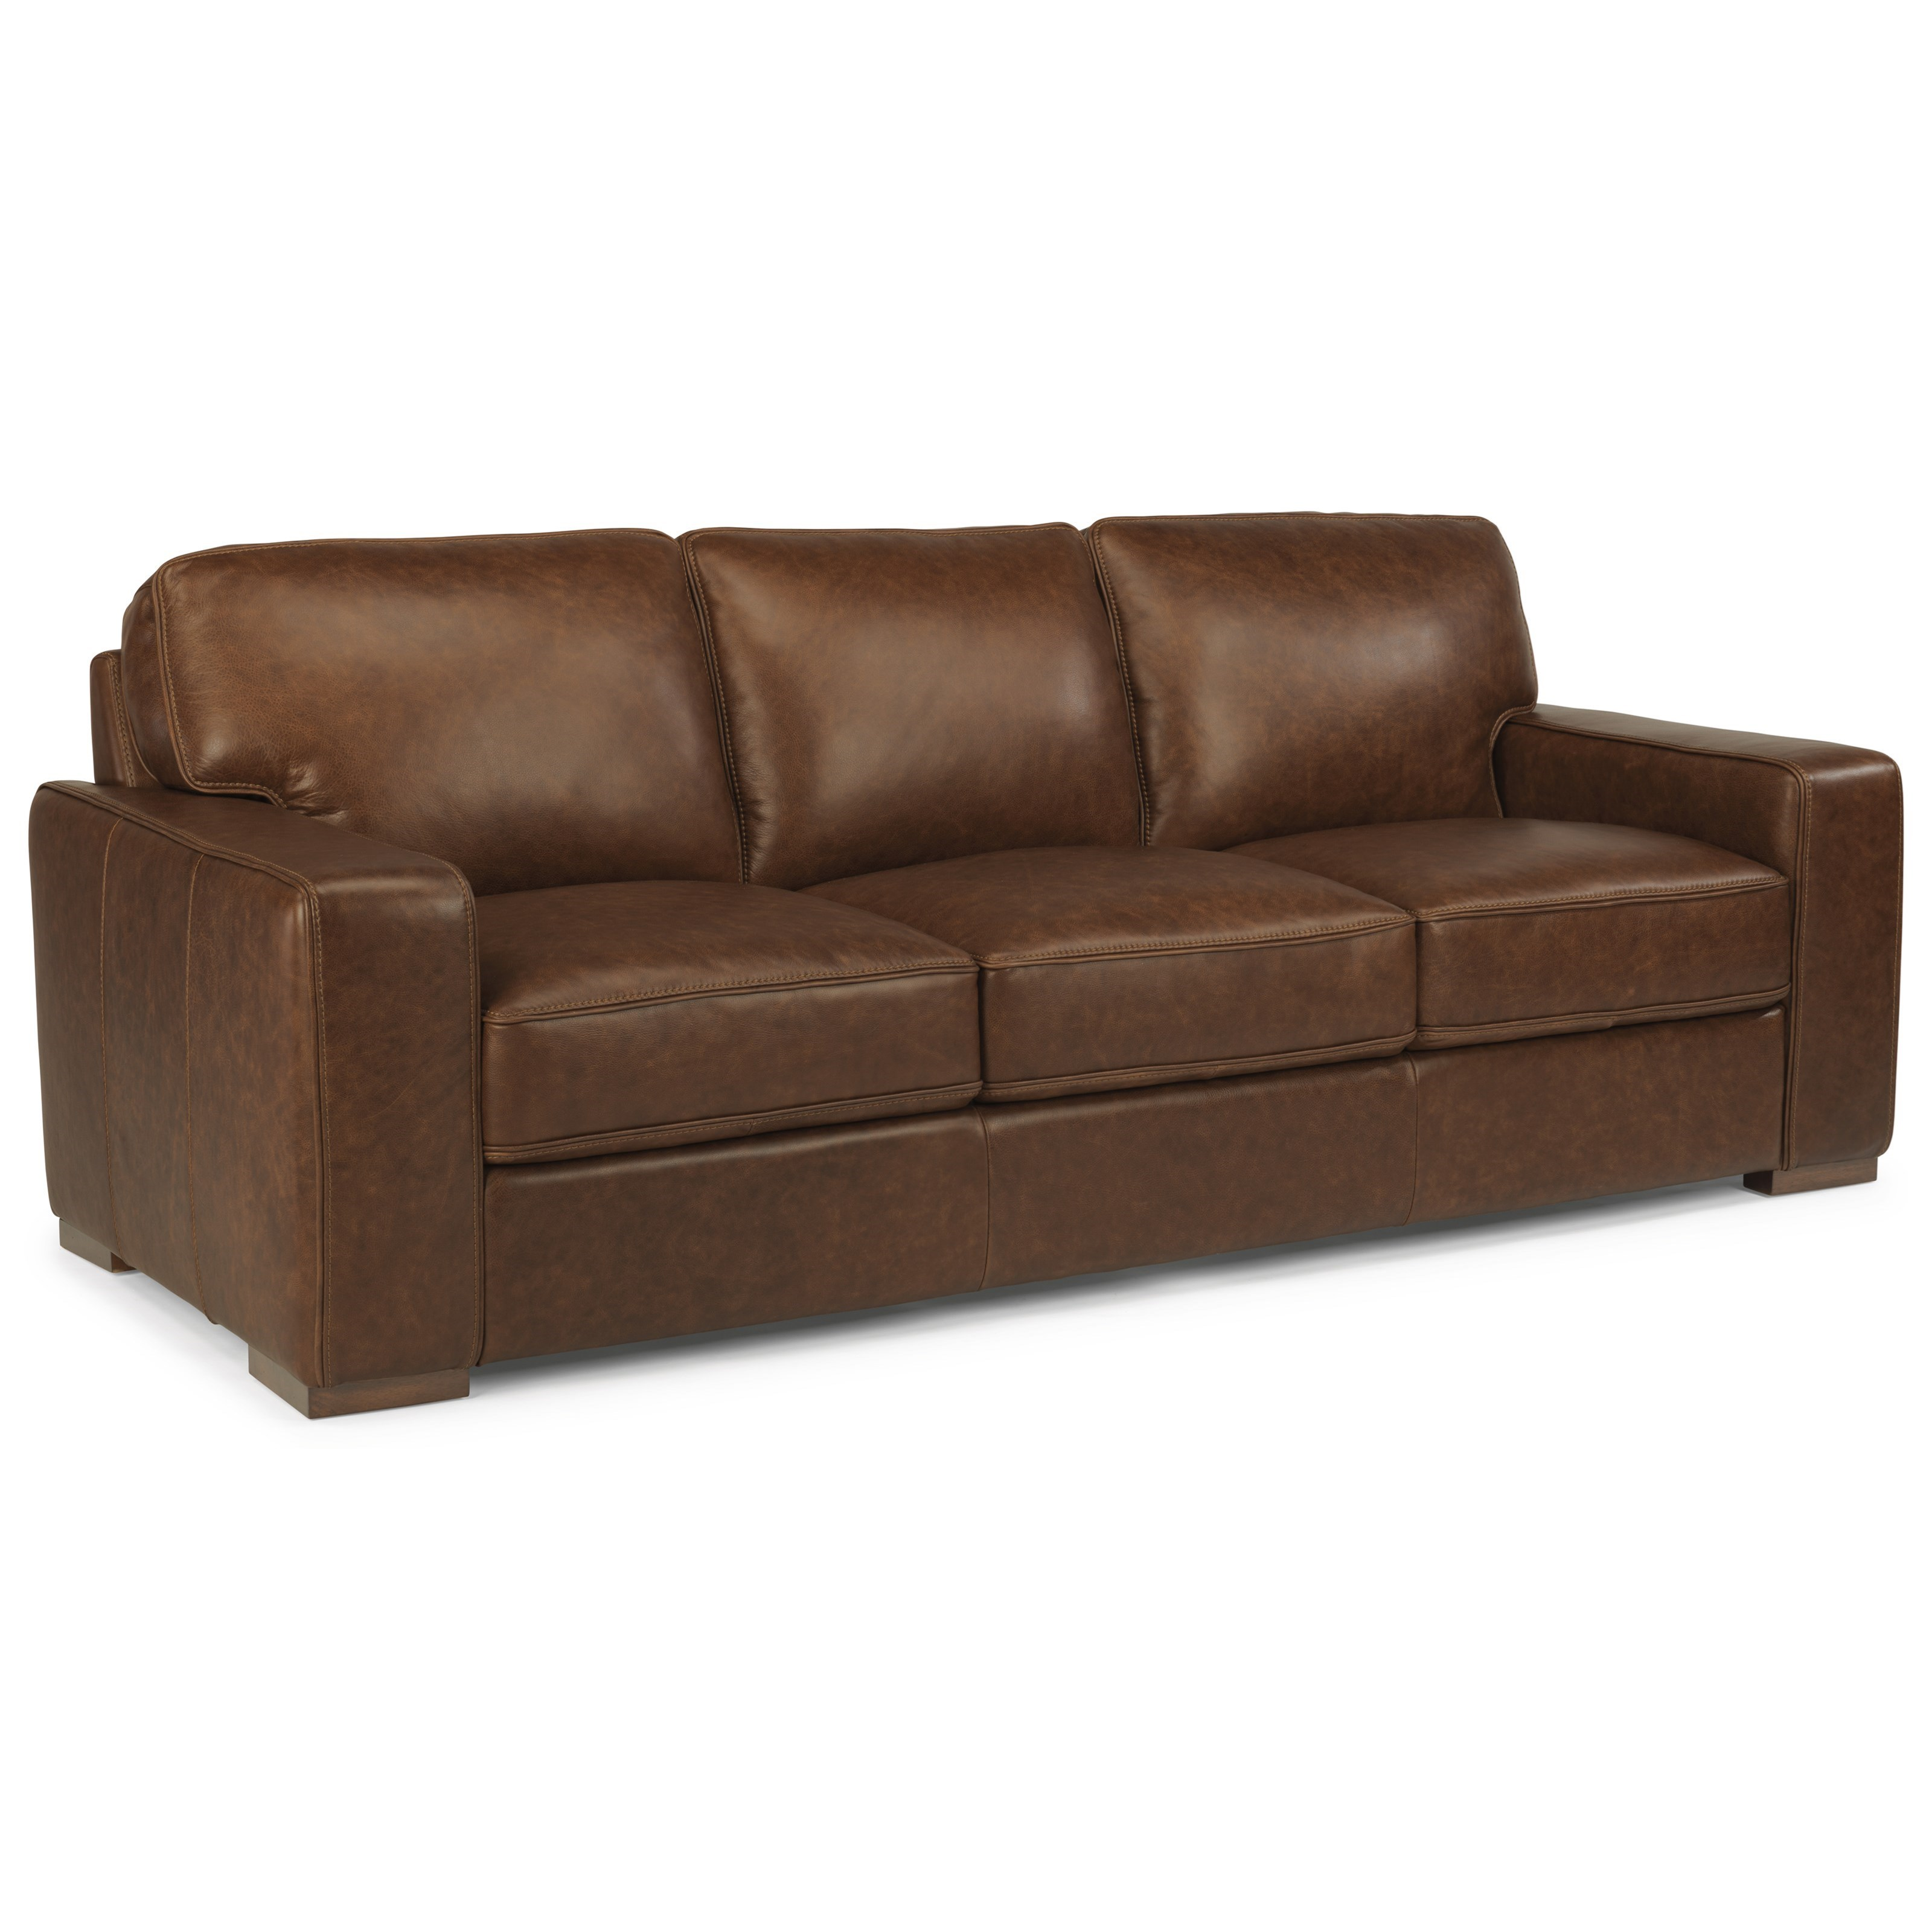 Flexsteel Latitudes Mckinley Contemporary Leather Sofa Dunk